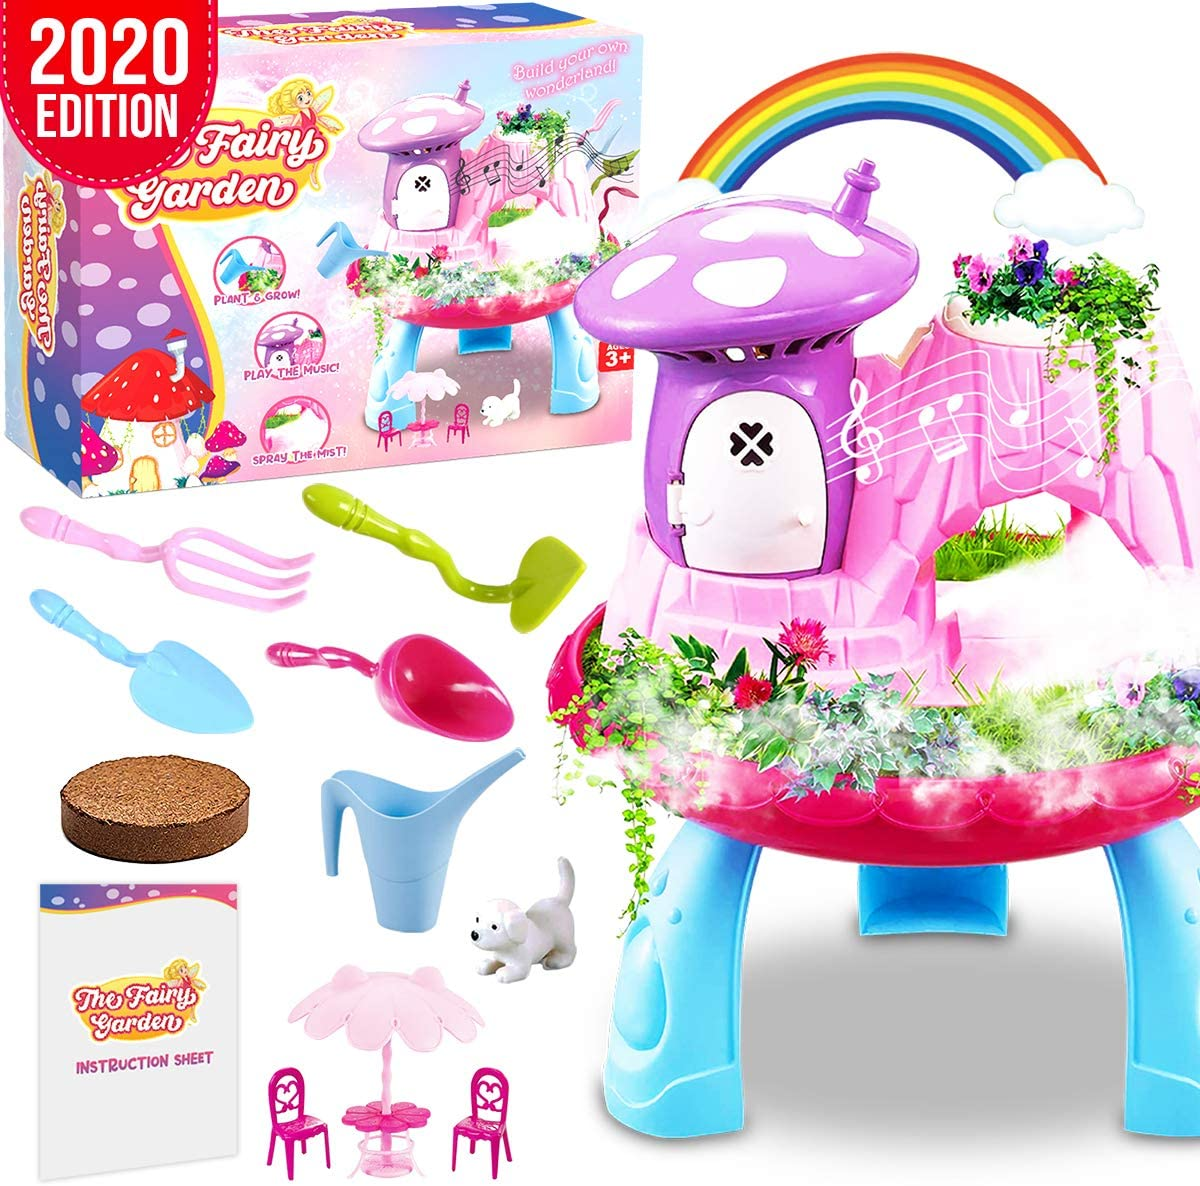 Insnug Fairy Garden Decor Craft Kits - Arts and Crafts for Kids Age 3 4 5 6 7 8 Year Old Toddler Girl Boy Toys Educational Science Toy Gifts for Indoor Outdoor kit Kids Activity Gardening Tool Set